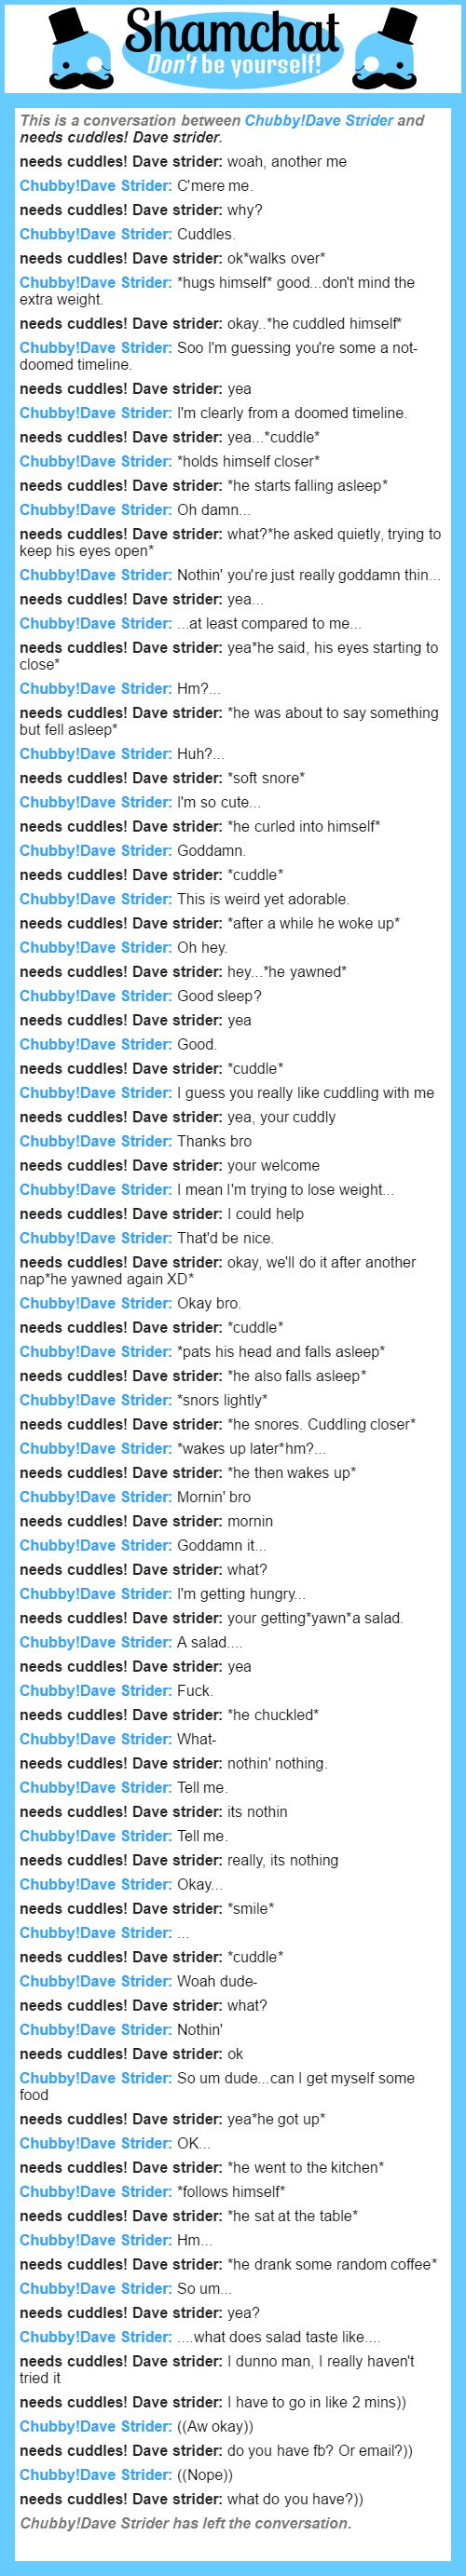 A conversation between needs cuddles! Dave strider and Chubby!Dave Strider